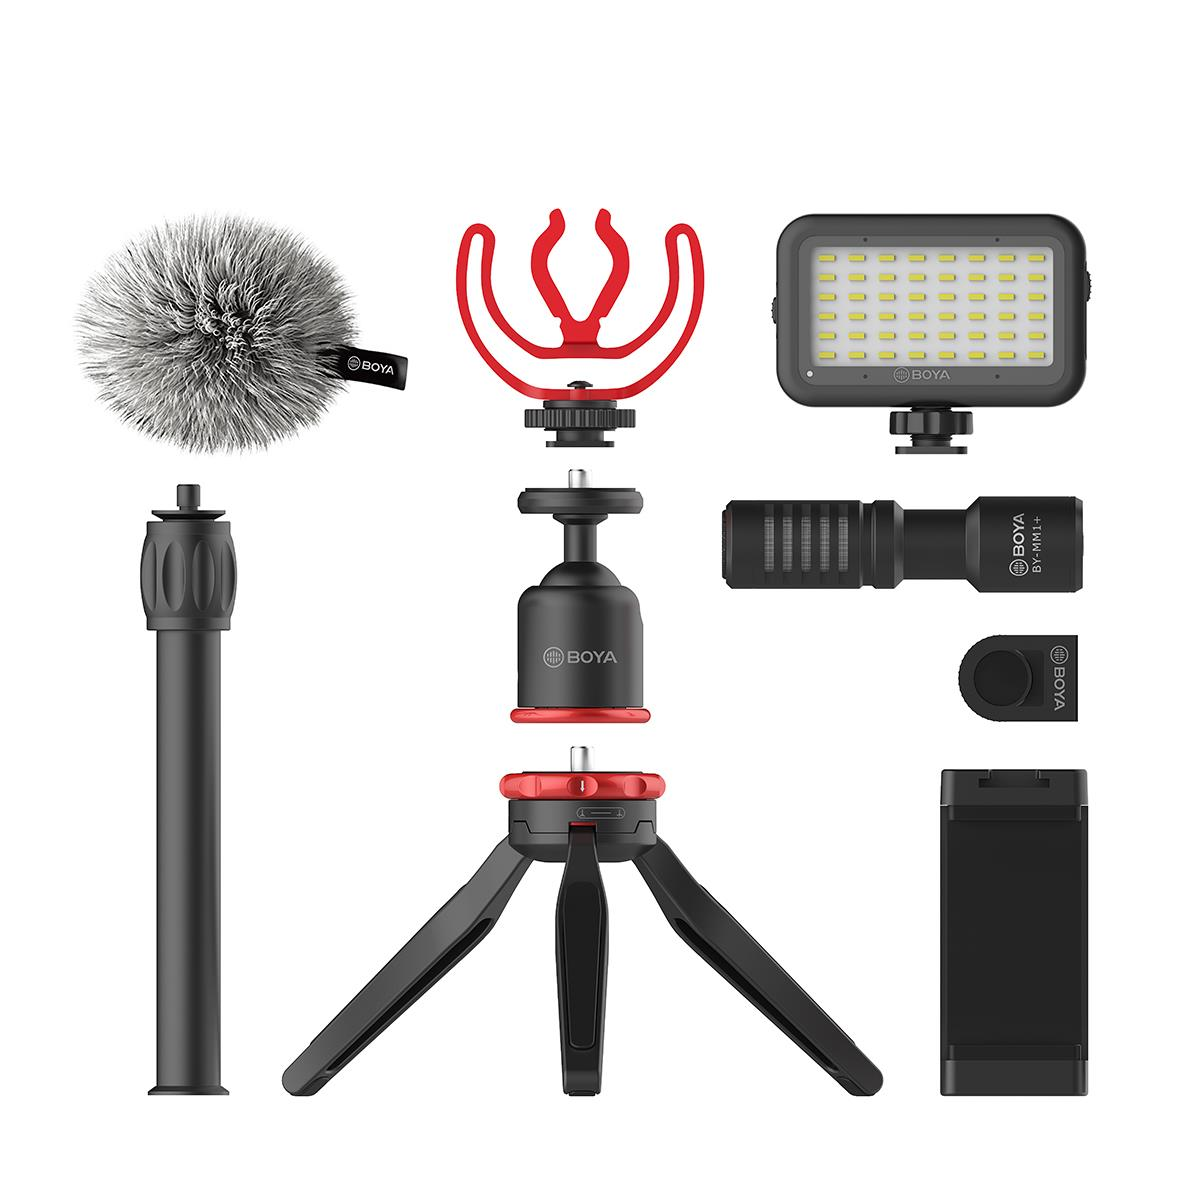 BOYA BY-VG350 Vlogger Kit Plus with BY-MM1+ Shotgun Microphone, LED Light Microphones for iOS & Android Devices Boya